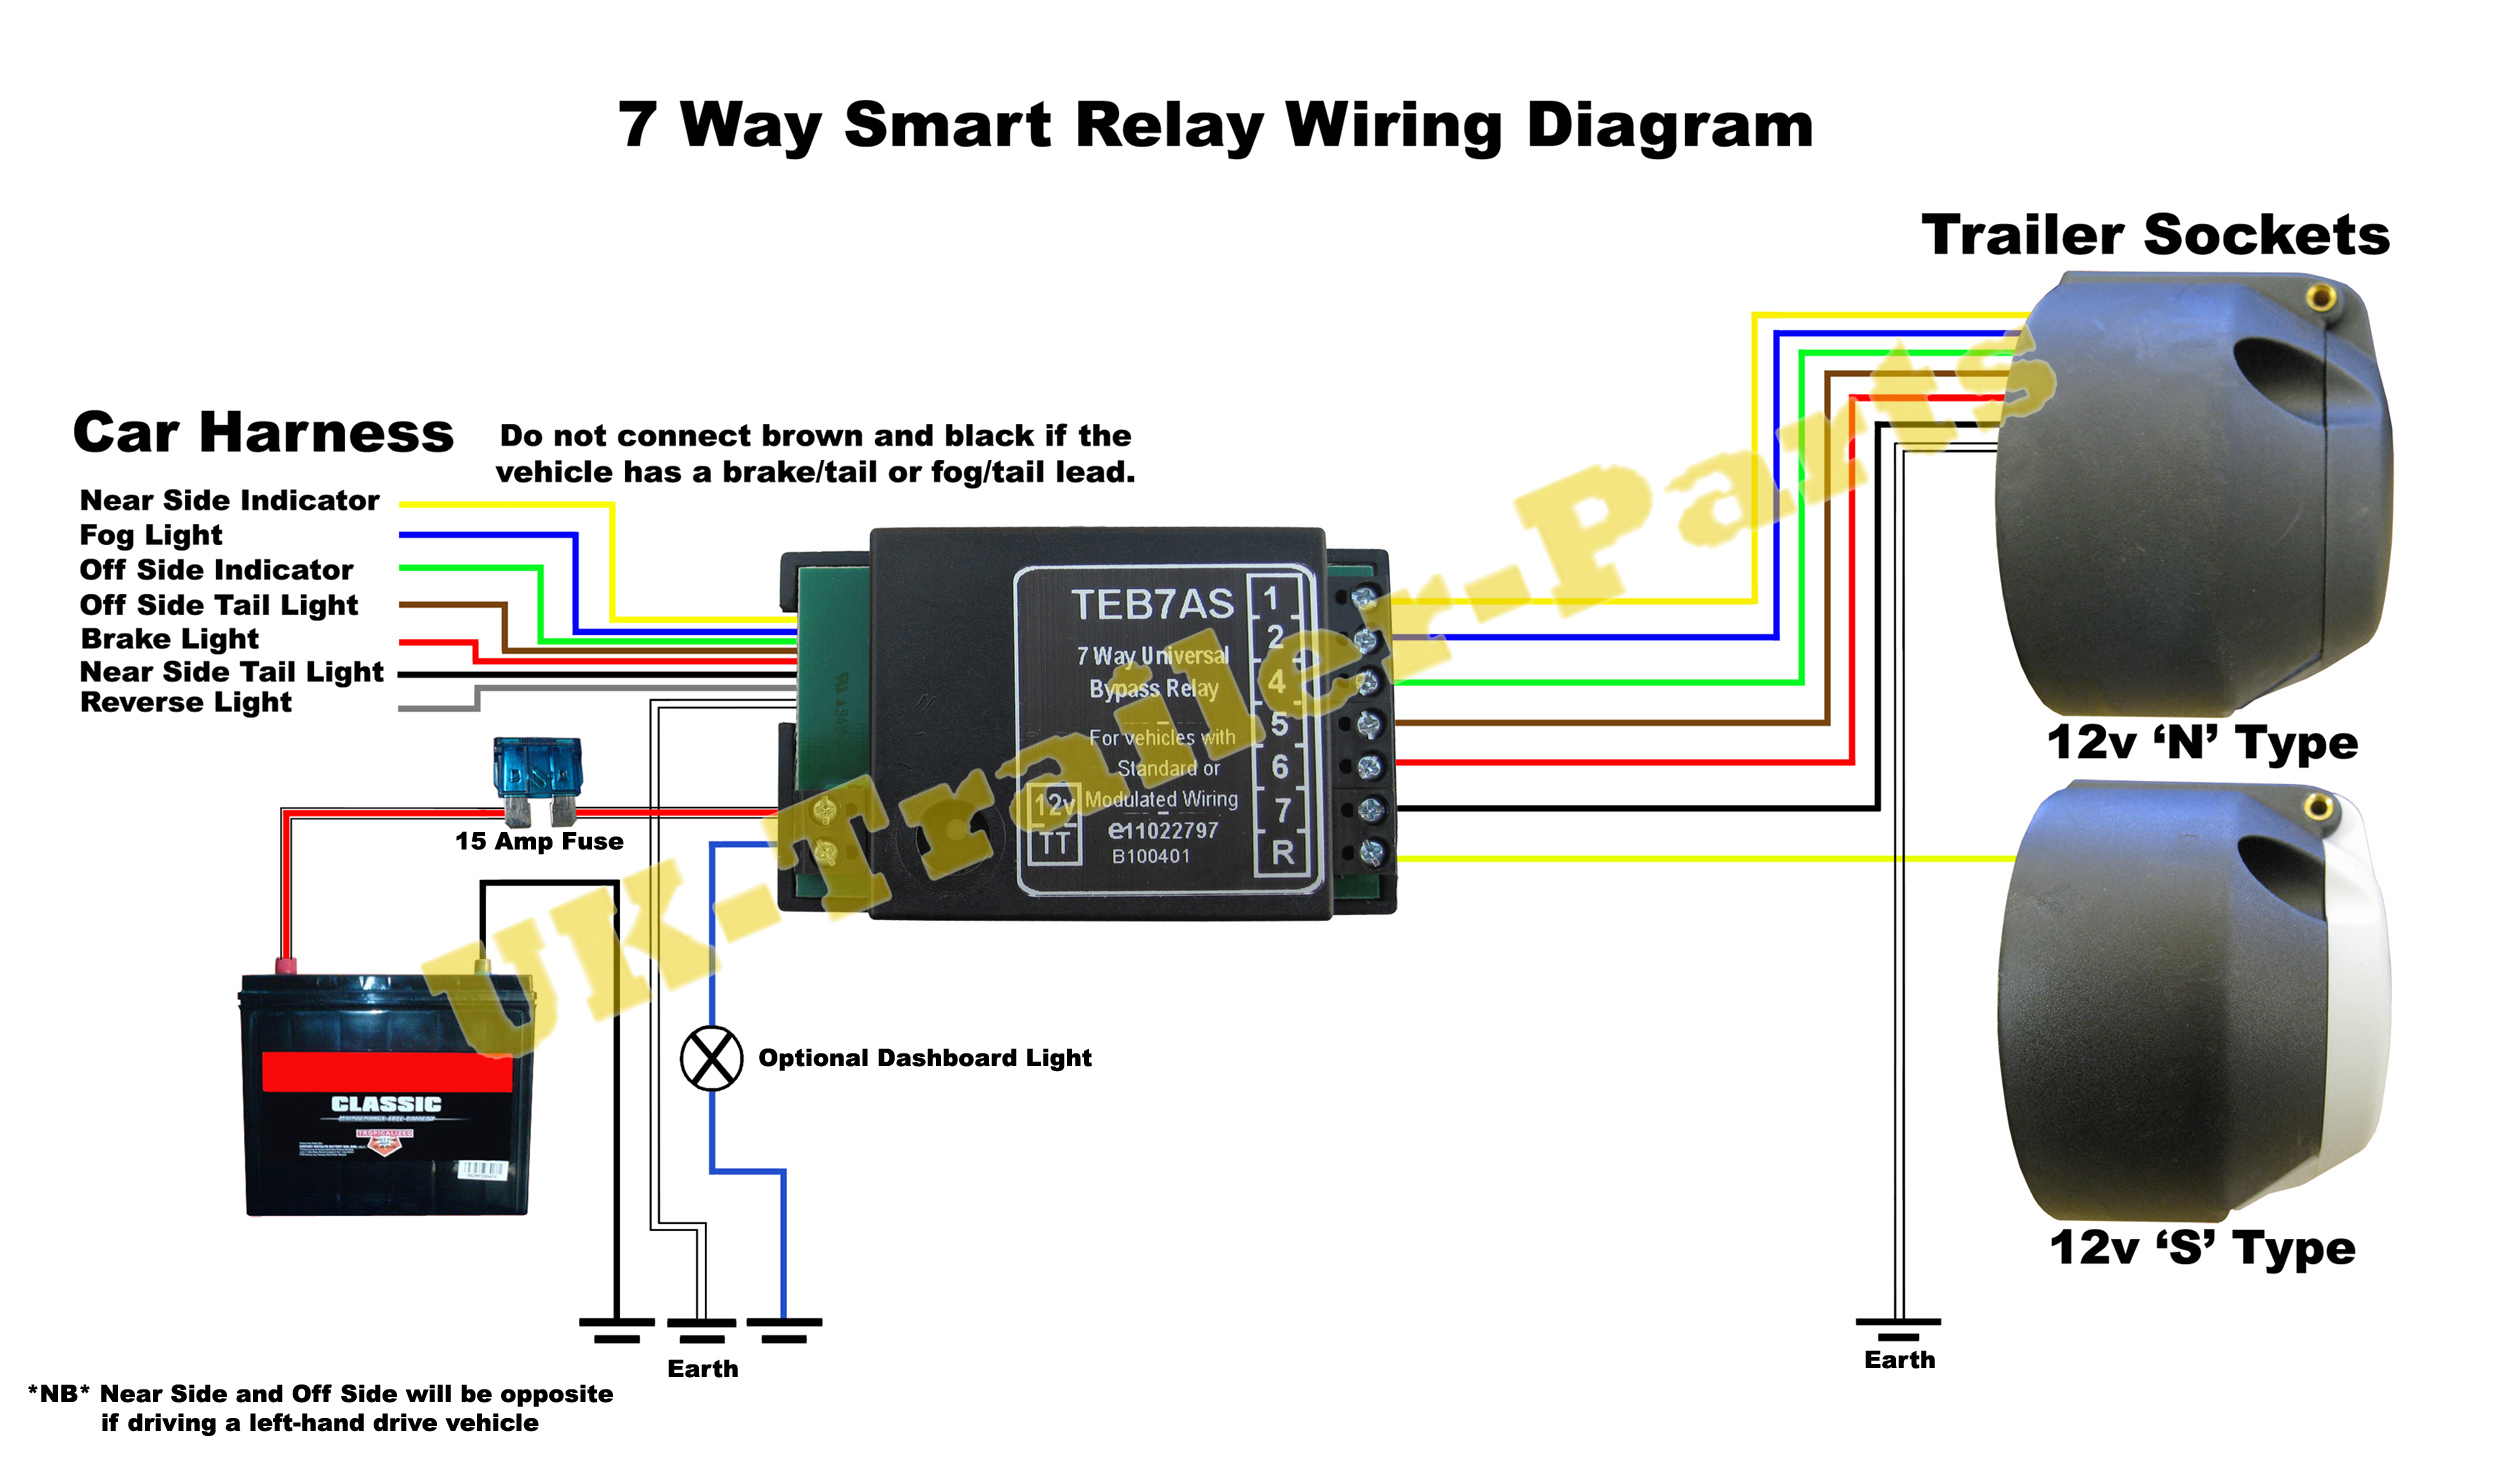 smart relay wiring diagram2 7 way universal bypass relay wiring diagram uk trailer parts volvo v70 towbar wiring diagram at n-0.co